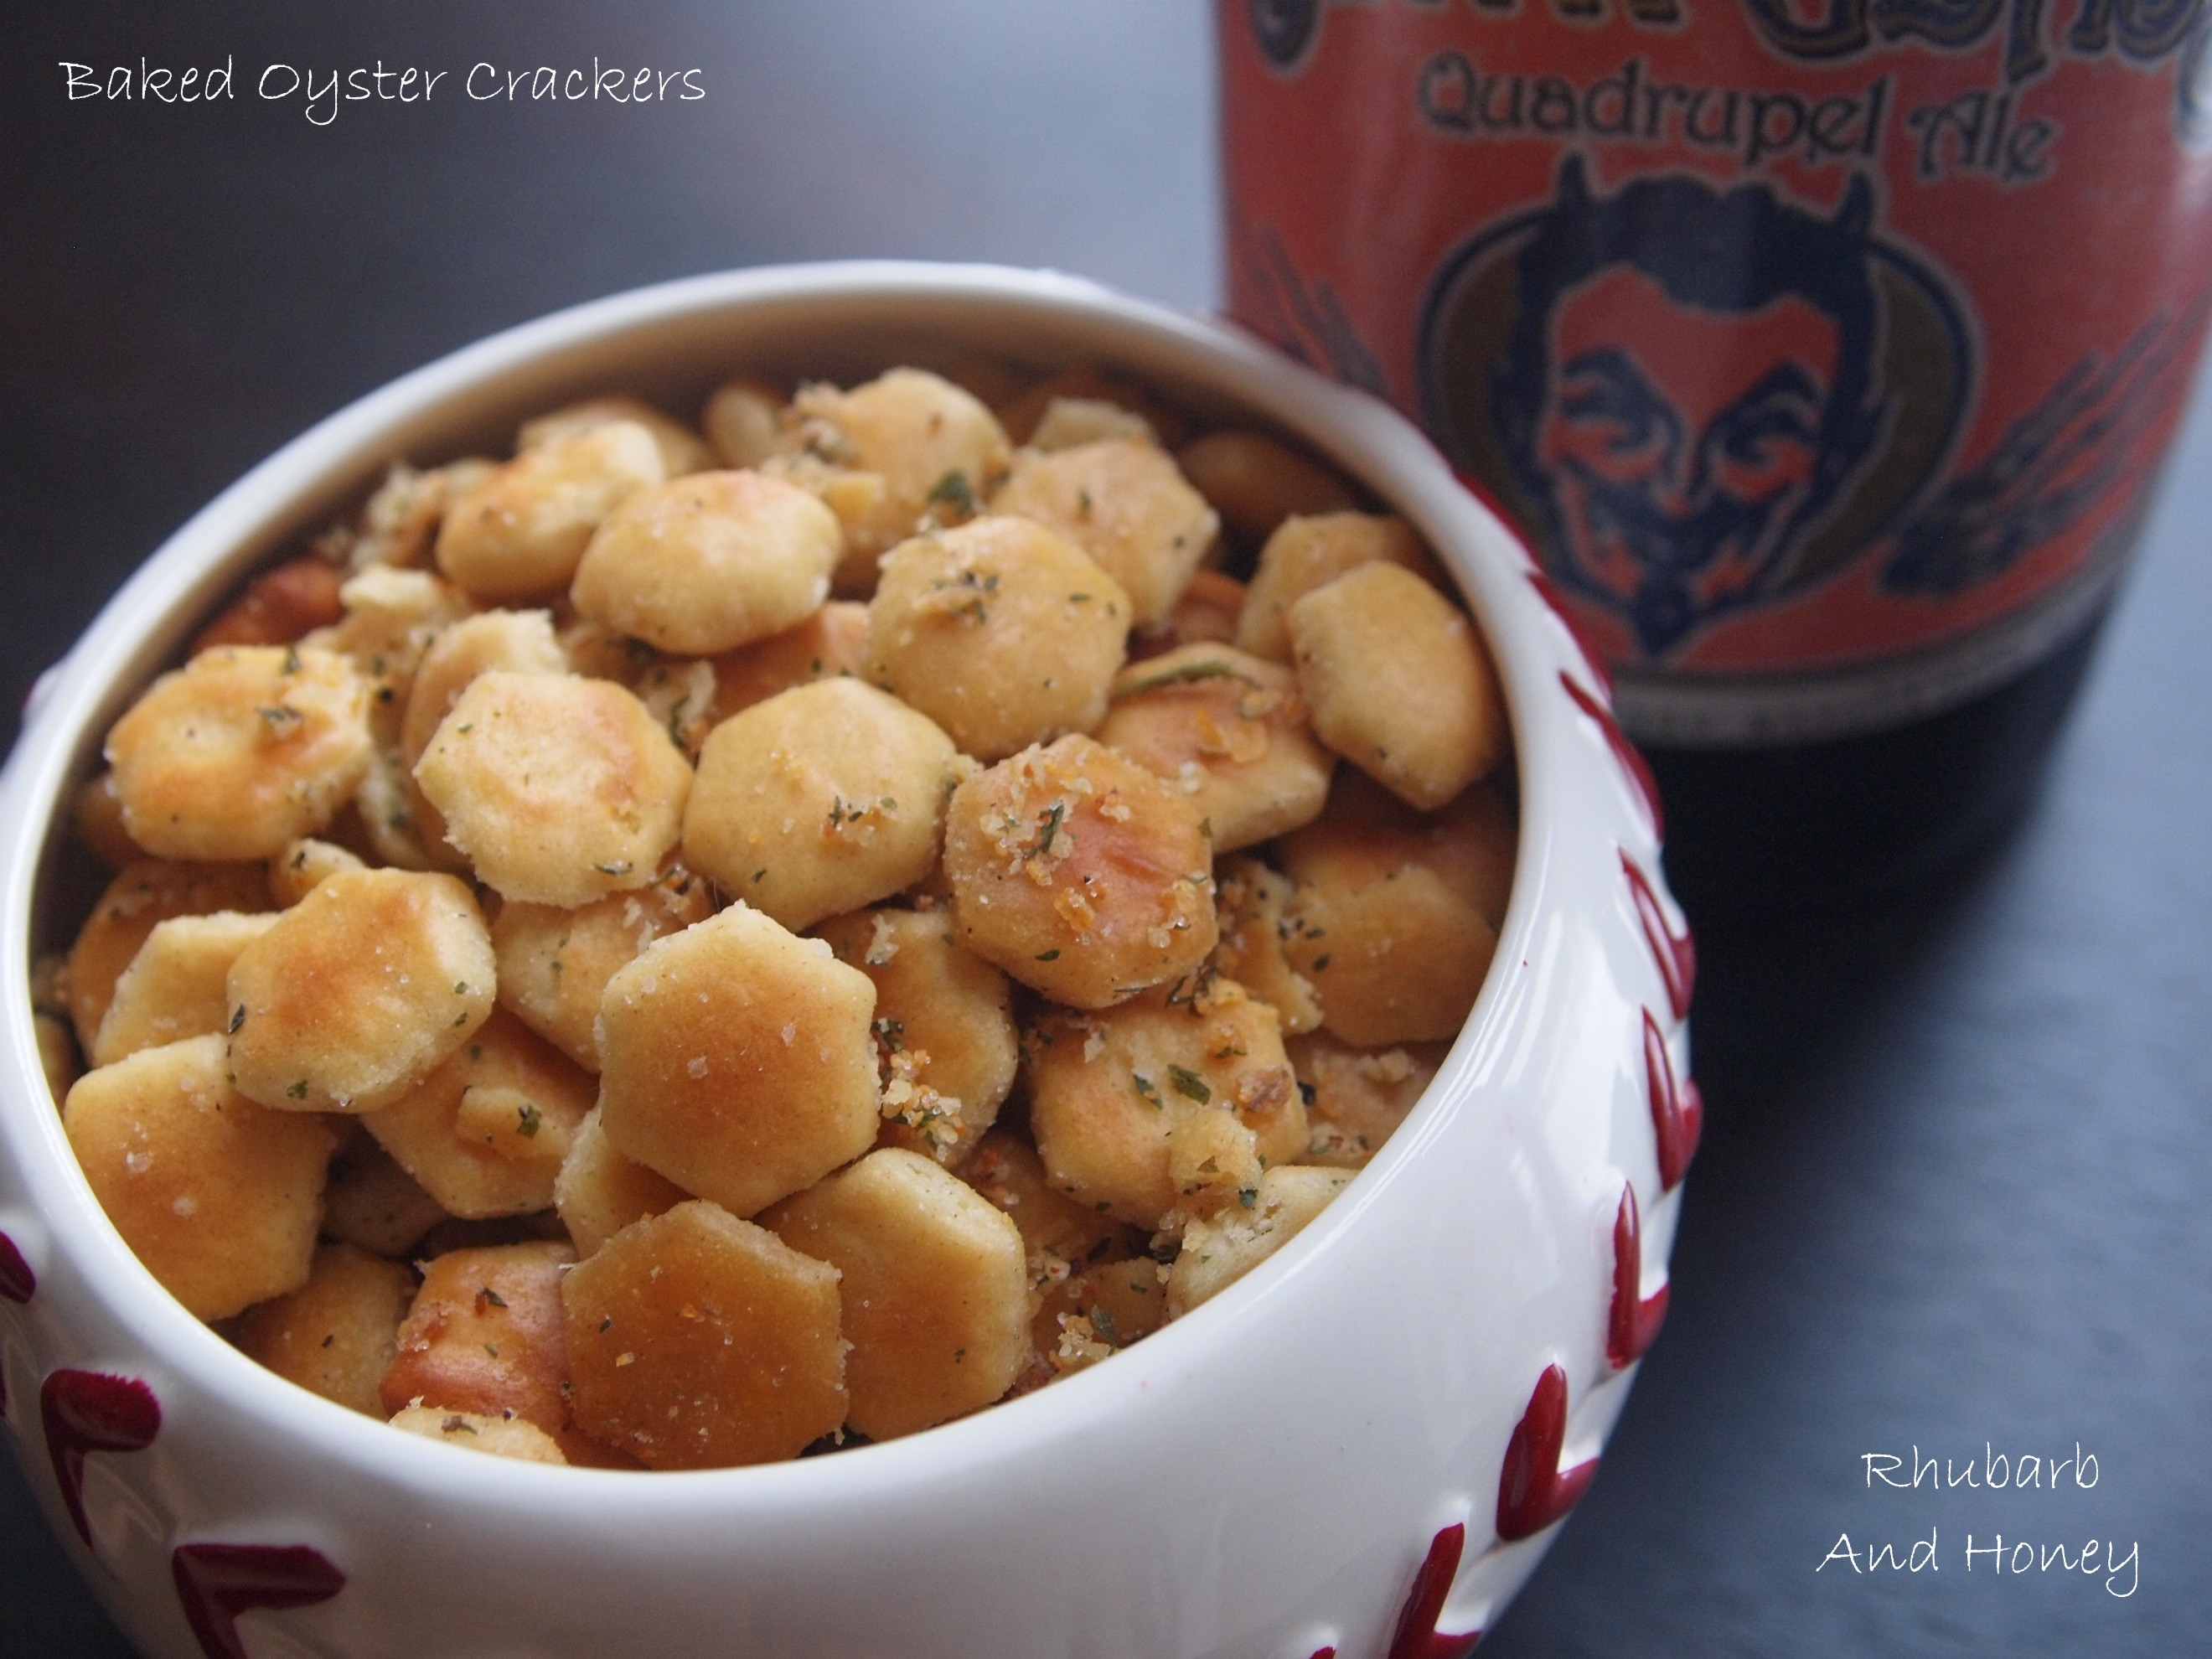 Throwback Snack: Baked Oyster Crackers